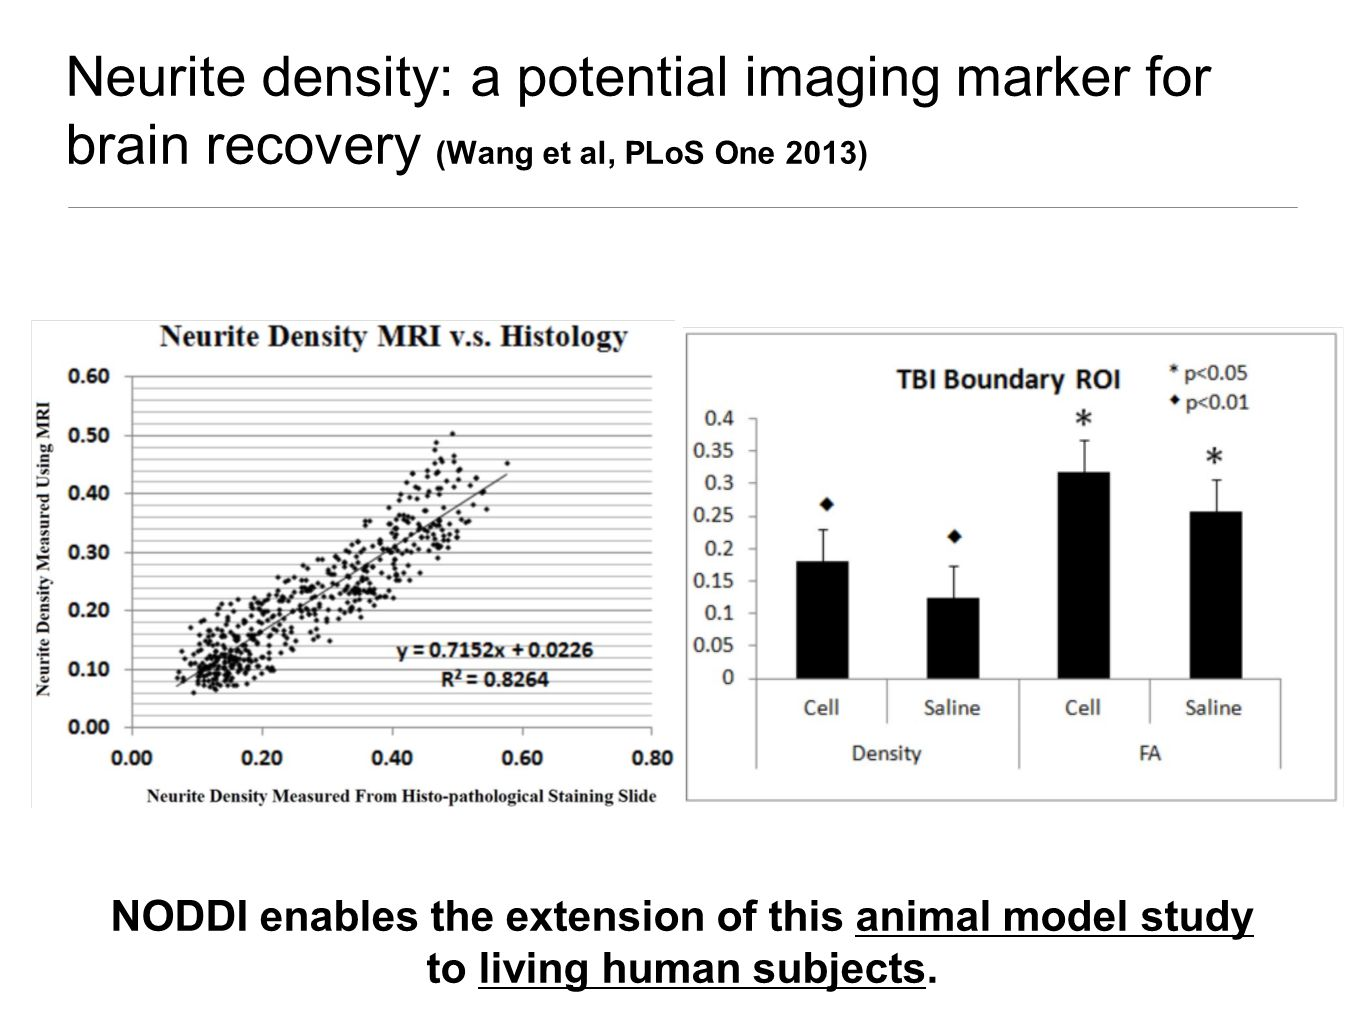 Neurite density: a potential imaging marker for brain recovery (Wang et al, PLoS One 2013) NODDI enables the extension of this animal model study to living human subjects.